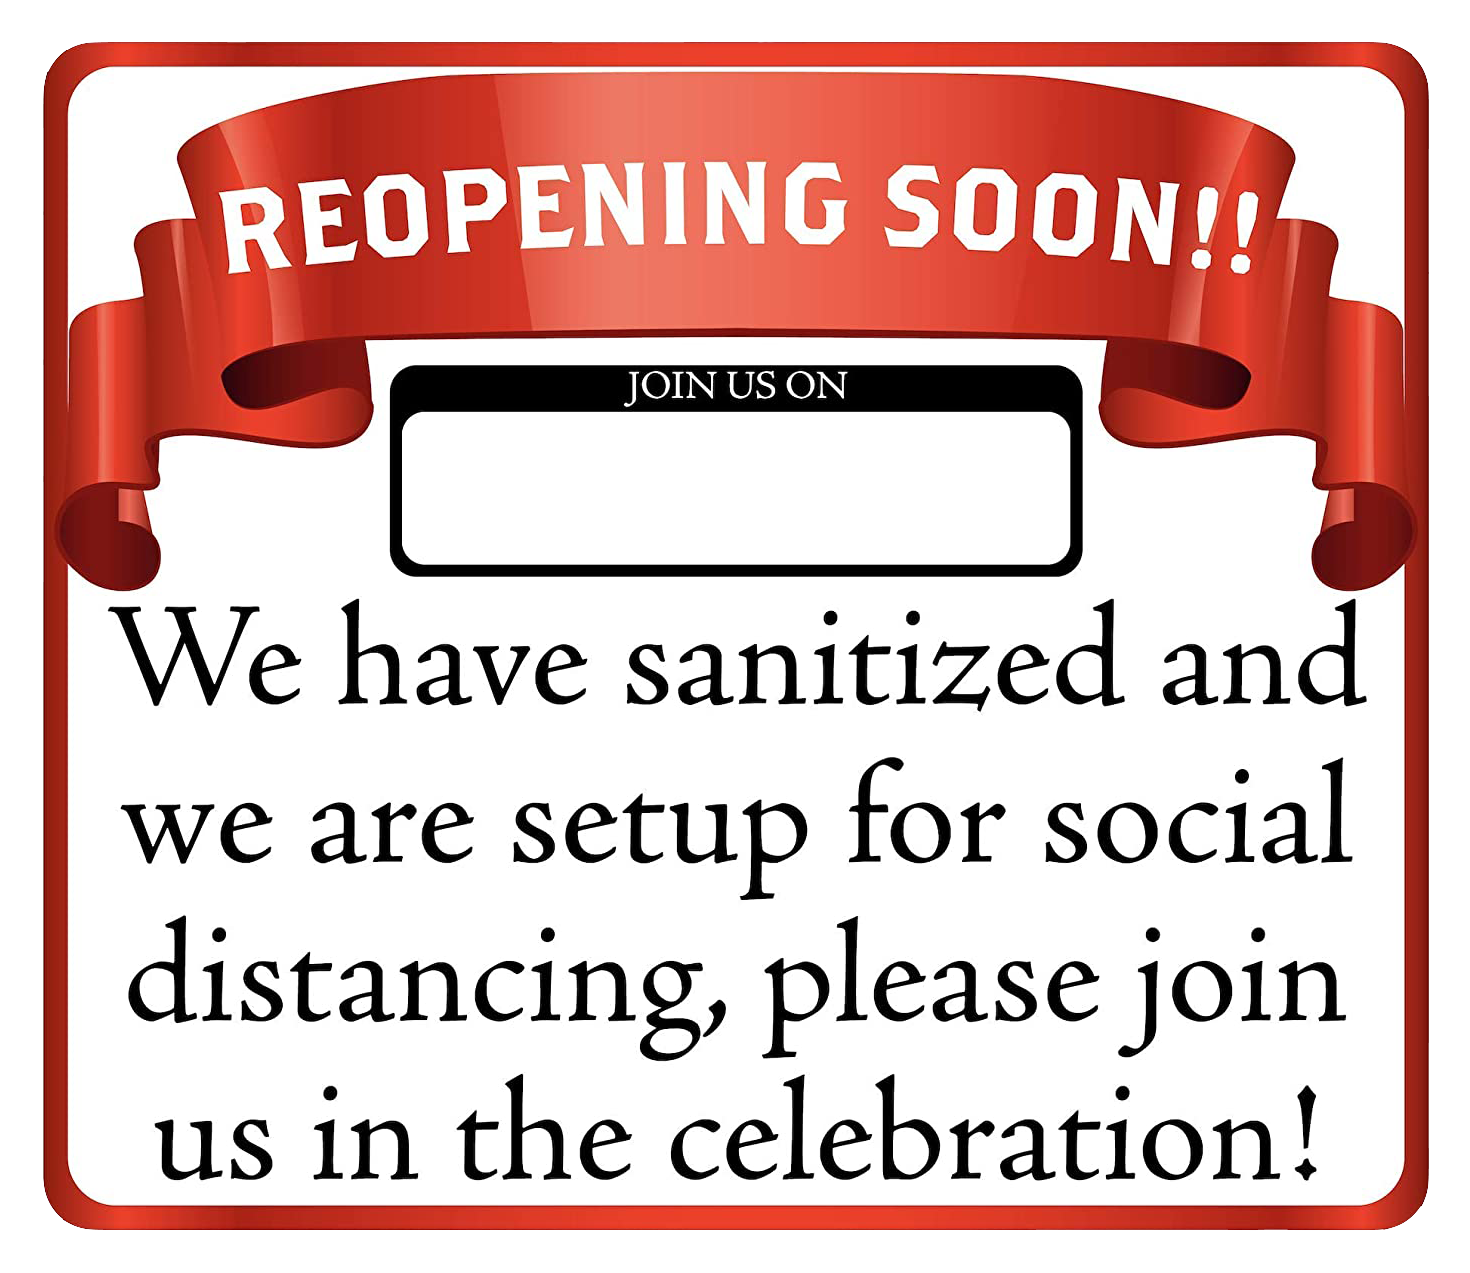 """Reopening Soon"" Social Distancing, Adhesive Durable Vinyl Decal- 14x12"""